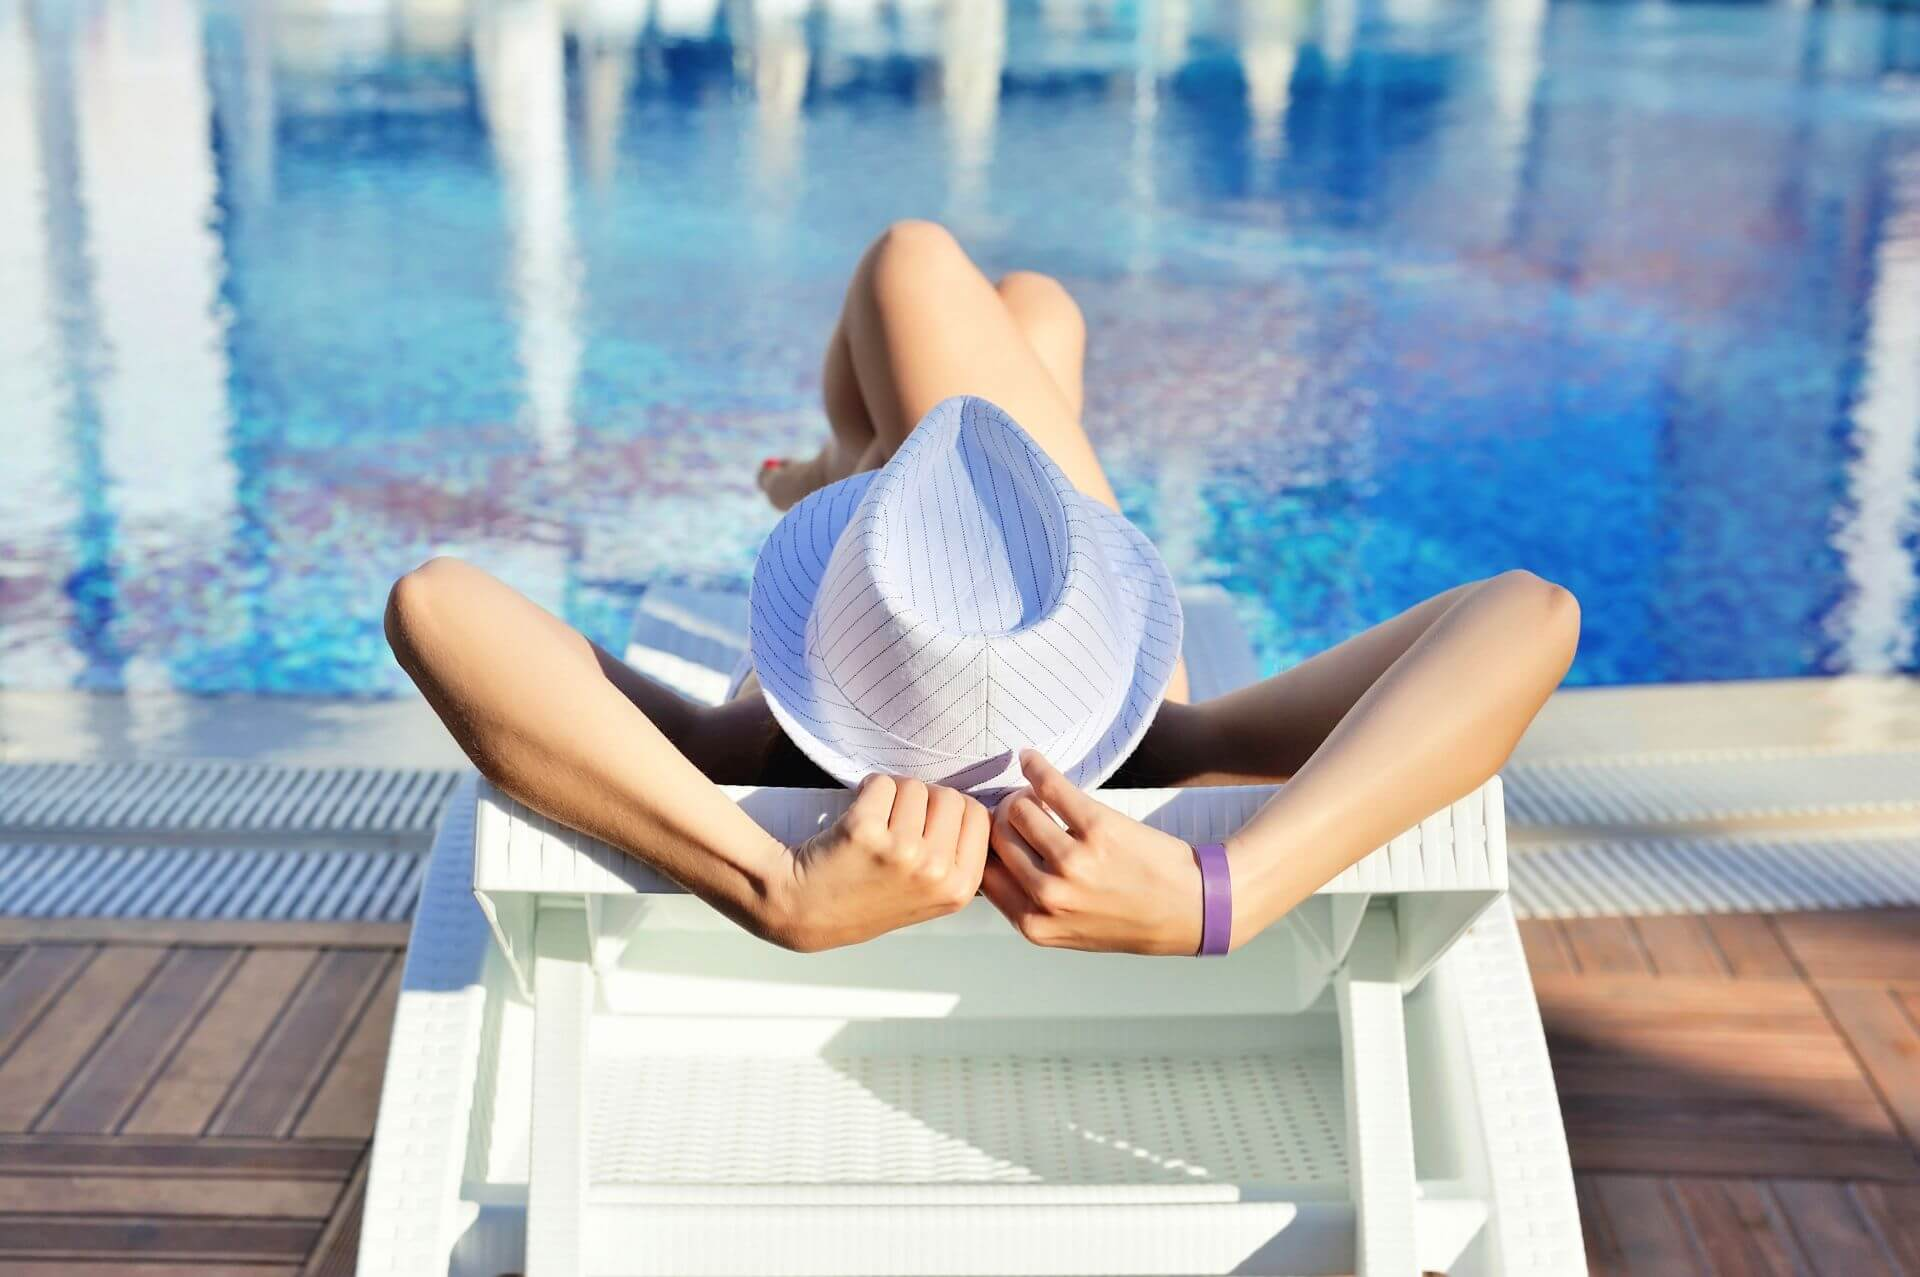 content/woman-in-white-hat-lying-on-a-lounger-near-the-p9zlee2.jpg